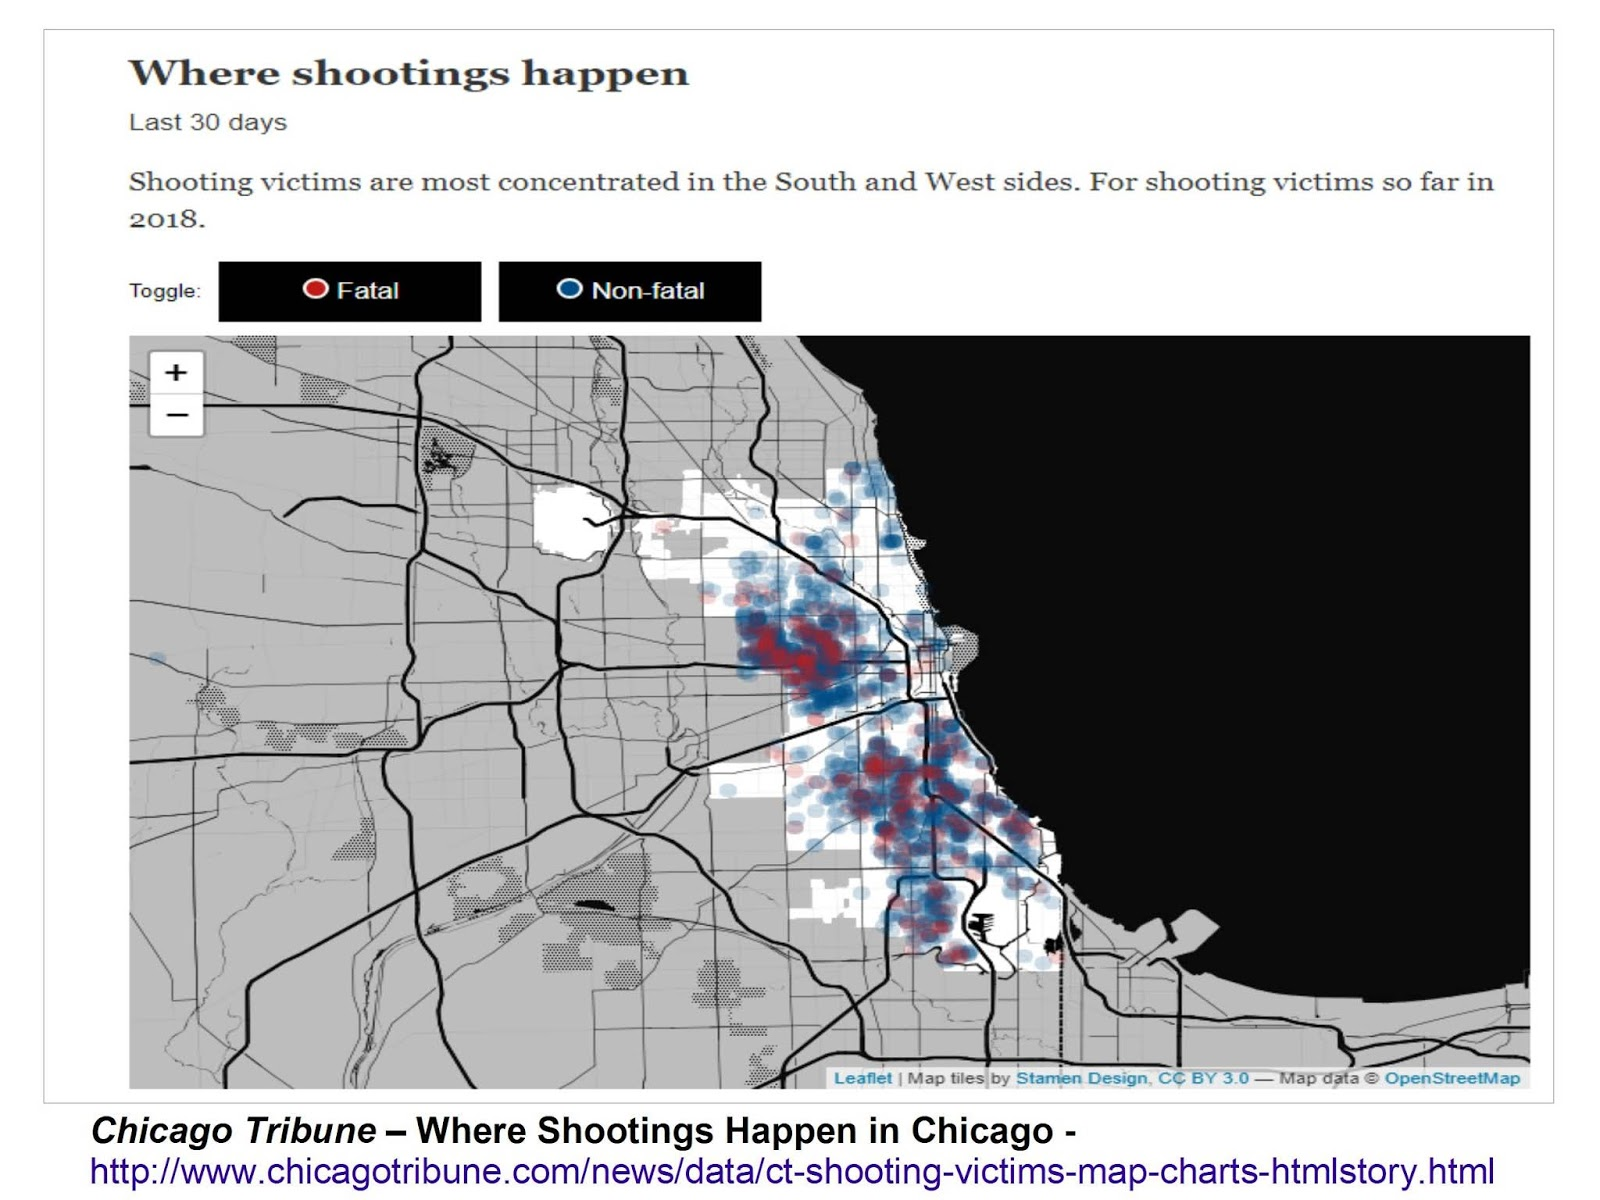 Tutor Mentor Insute, LLC: 31 Shot in Chicago - August 5 ... on chicago snow map, chicago murders, chicago police shooting, chicago homicide victims, chicago homicides april 2013, chicago gang map, chicago bike map, chicago neighborhood map, chicago city map, chicago gang neighborhoods, chicago road map, chicago police homicide, chicago death map, chicago homicide map 2012, chicago police map, chicago school map, chicago food map, chicago breaking weather, chicago violence map, chicago shooting today,